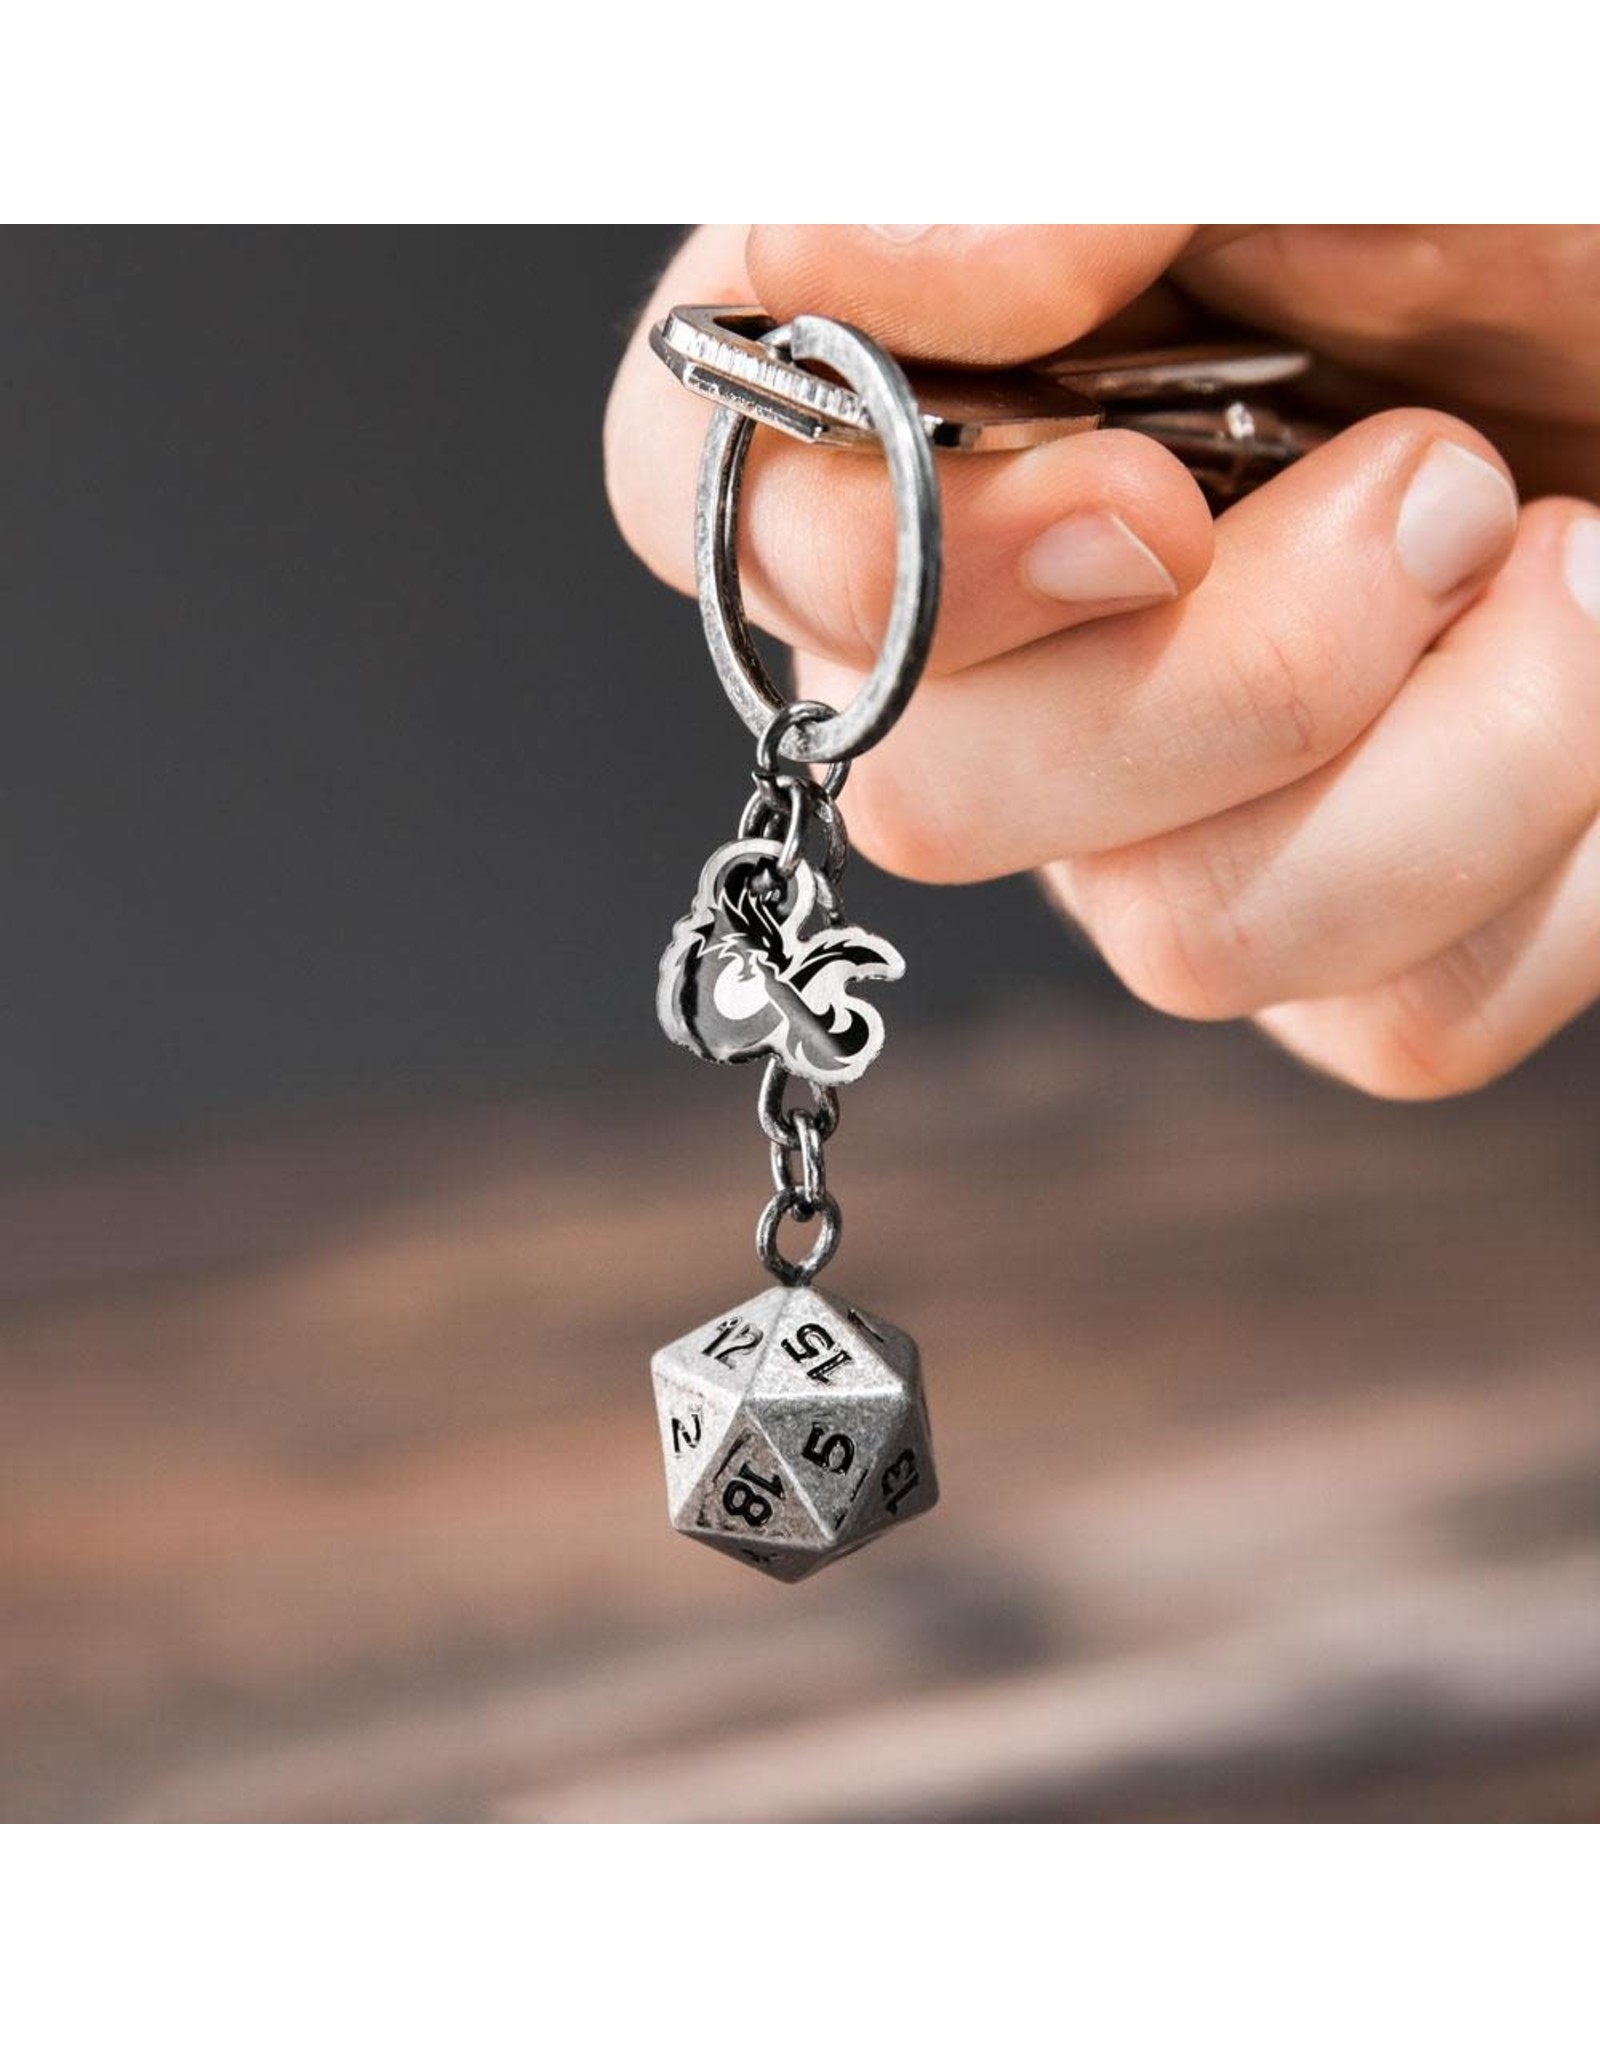 Paladone DUNGEONS & DRAGONS Metal Keychain - D20